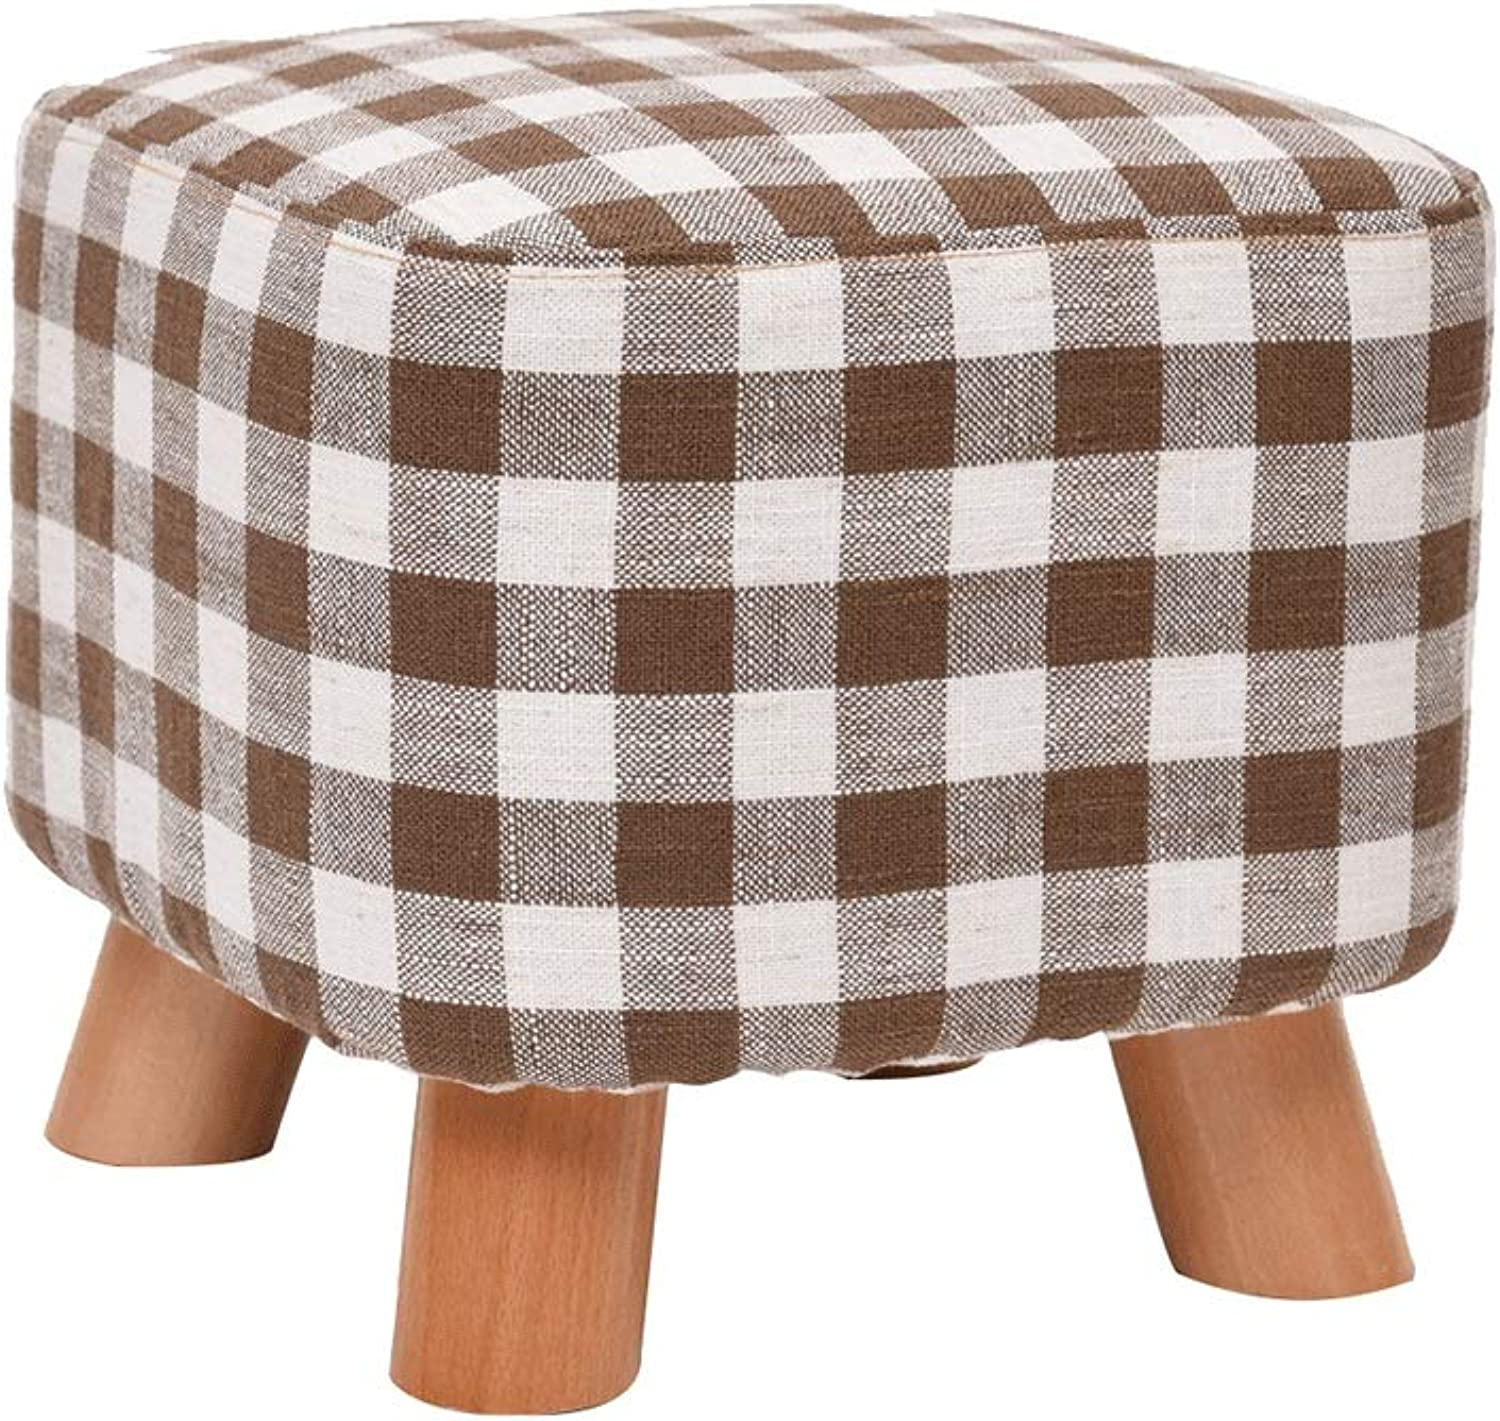 Zcxbhd Solid Wood Footstool,Sofa Bench,Creative Small Square Stool Change shoes Bench Load 150kg 28X25X17.5CM (color   D)